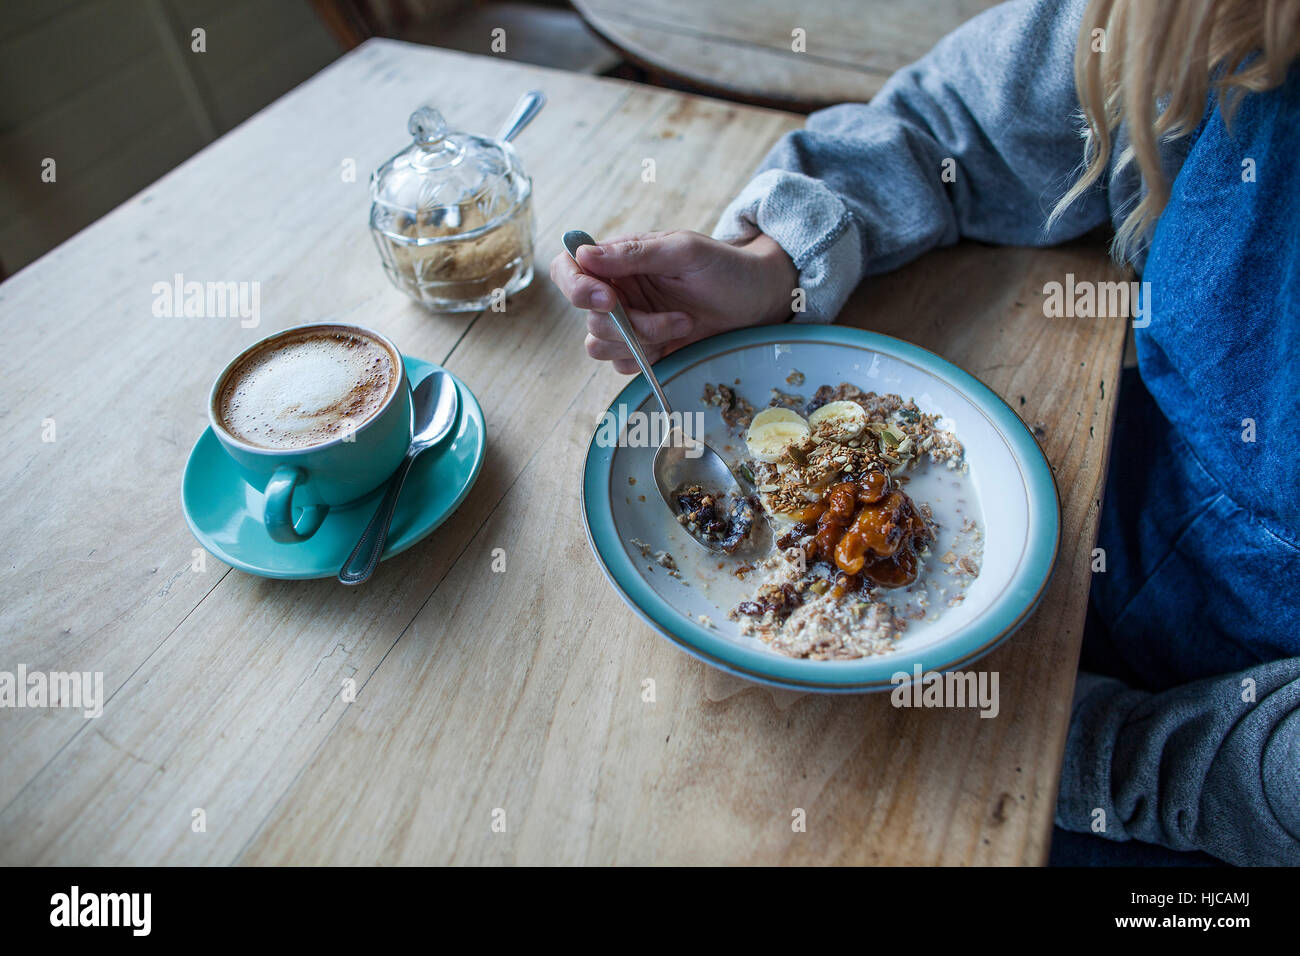 Young woman in cafe, manger du muesli, mid section Photo Stock